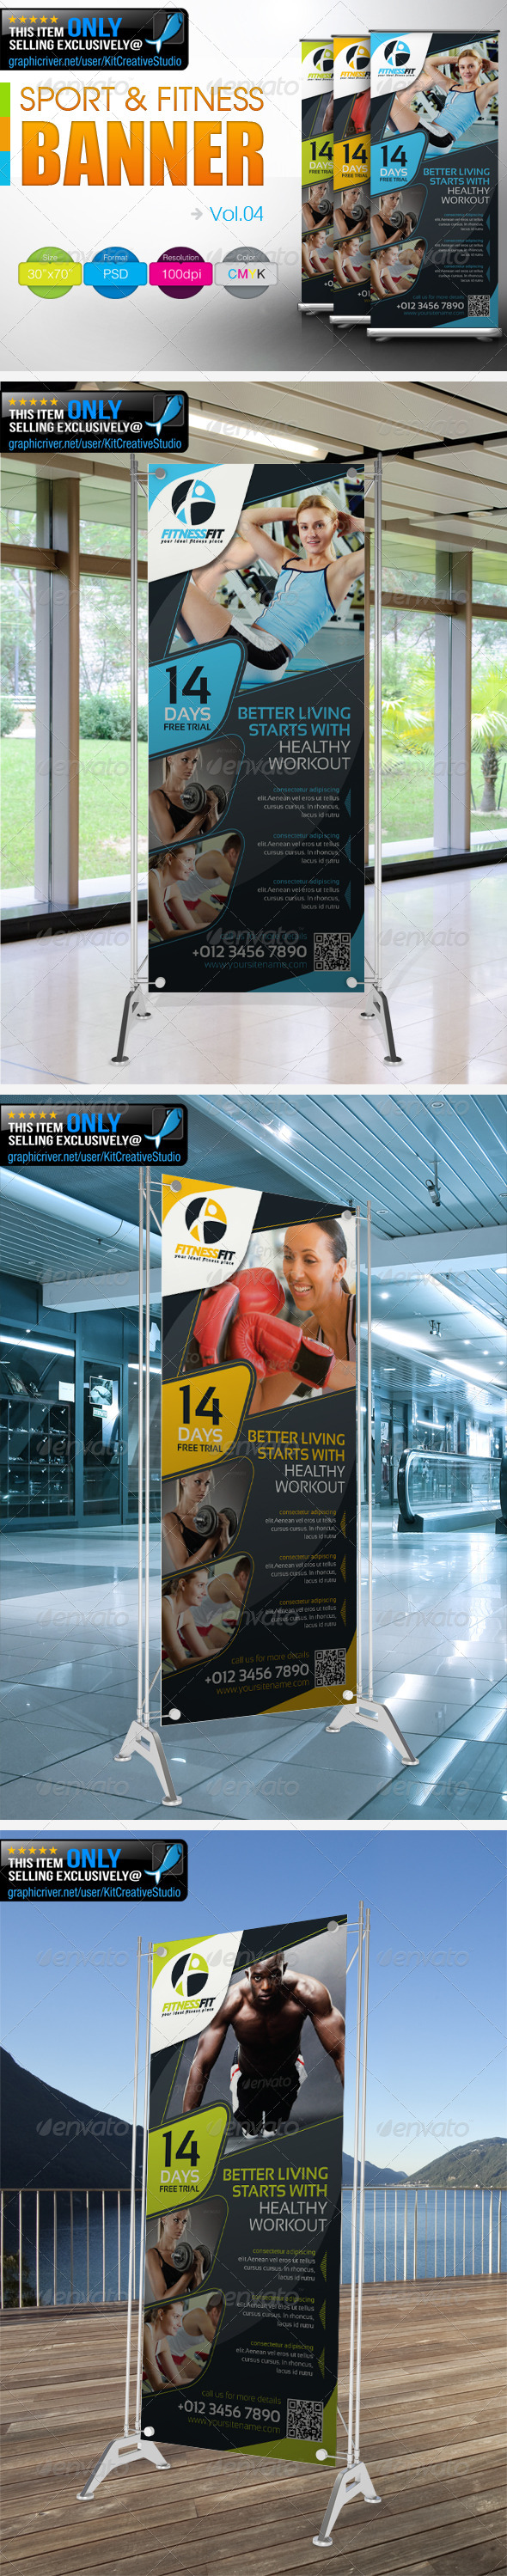 Fitness Banner Vol.4 - Signage Print Templates